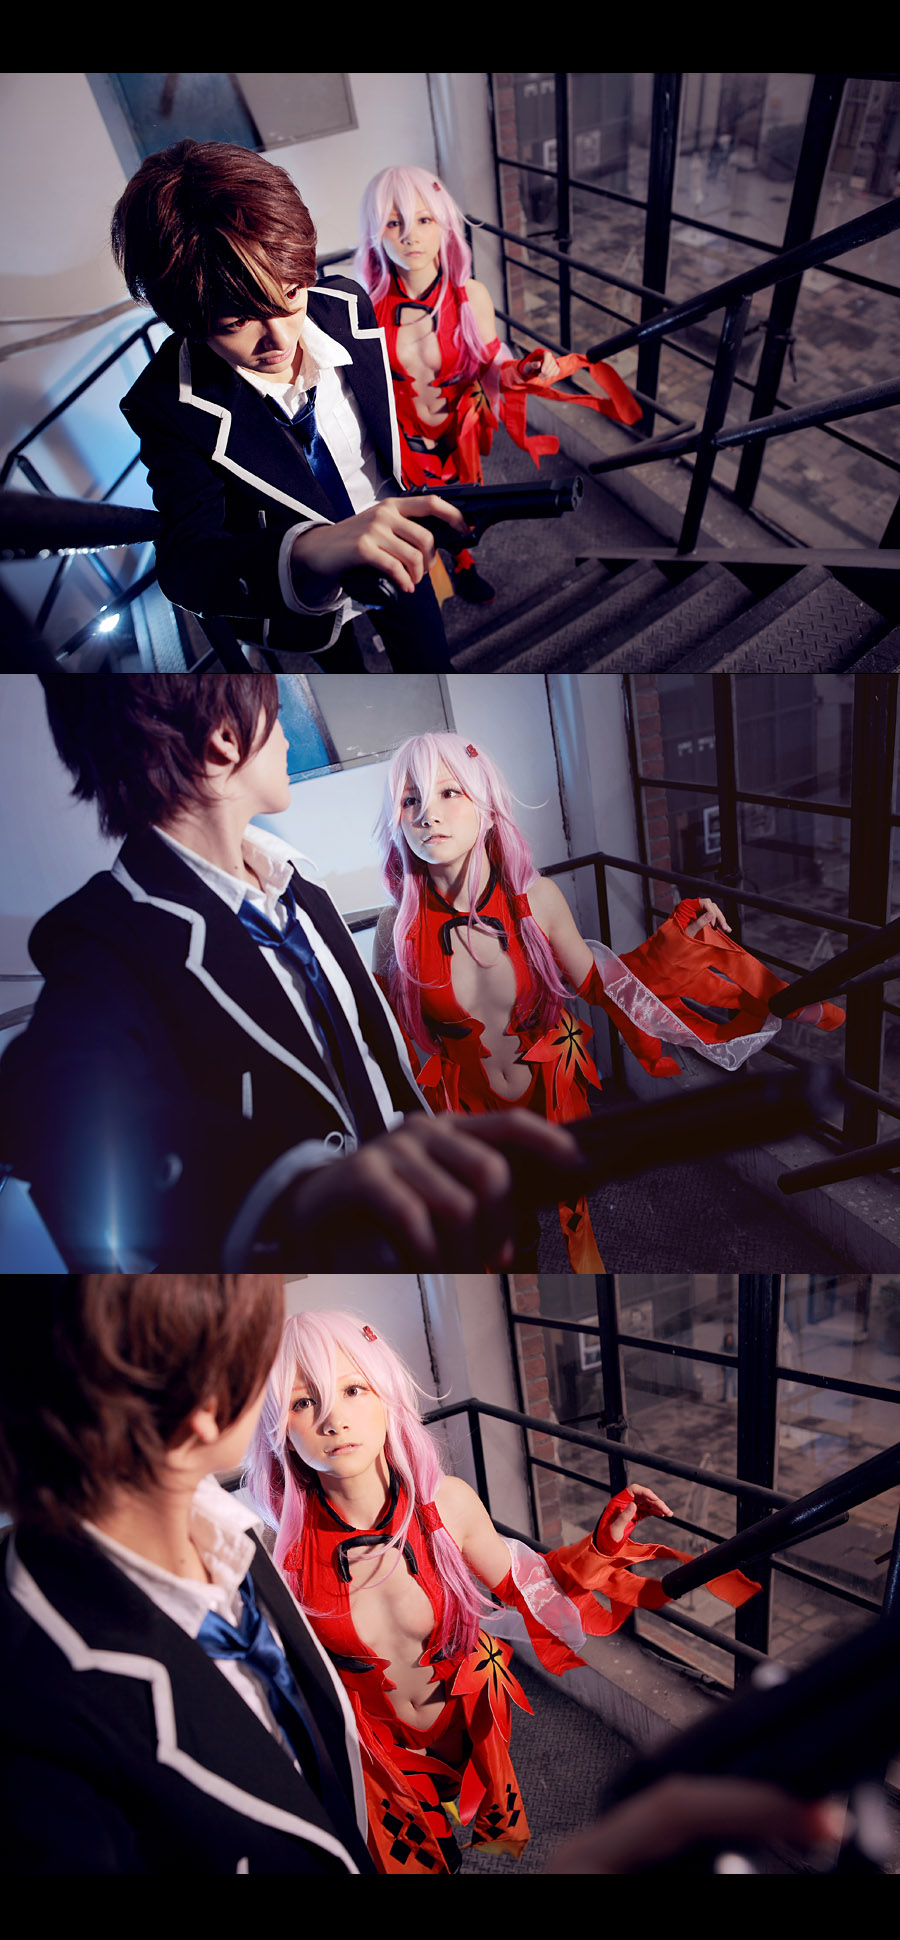 Guilty Crown120922-1 by bai917